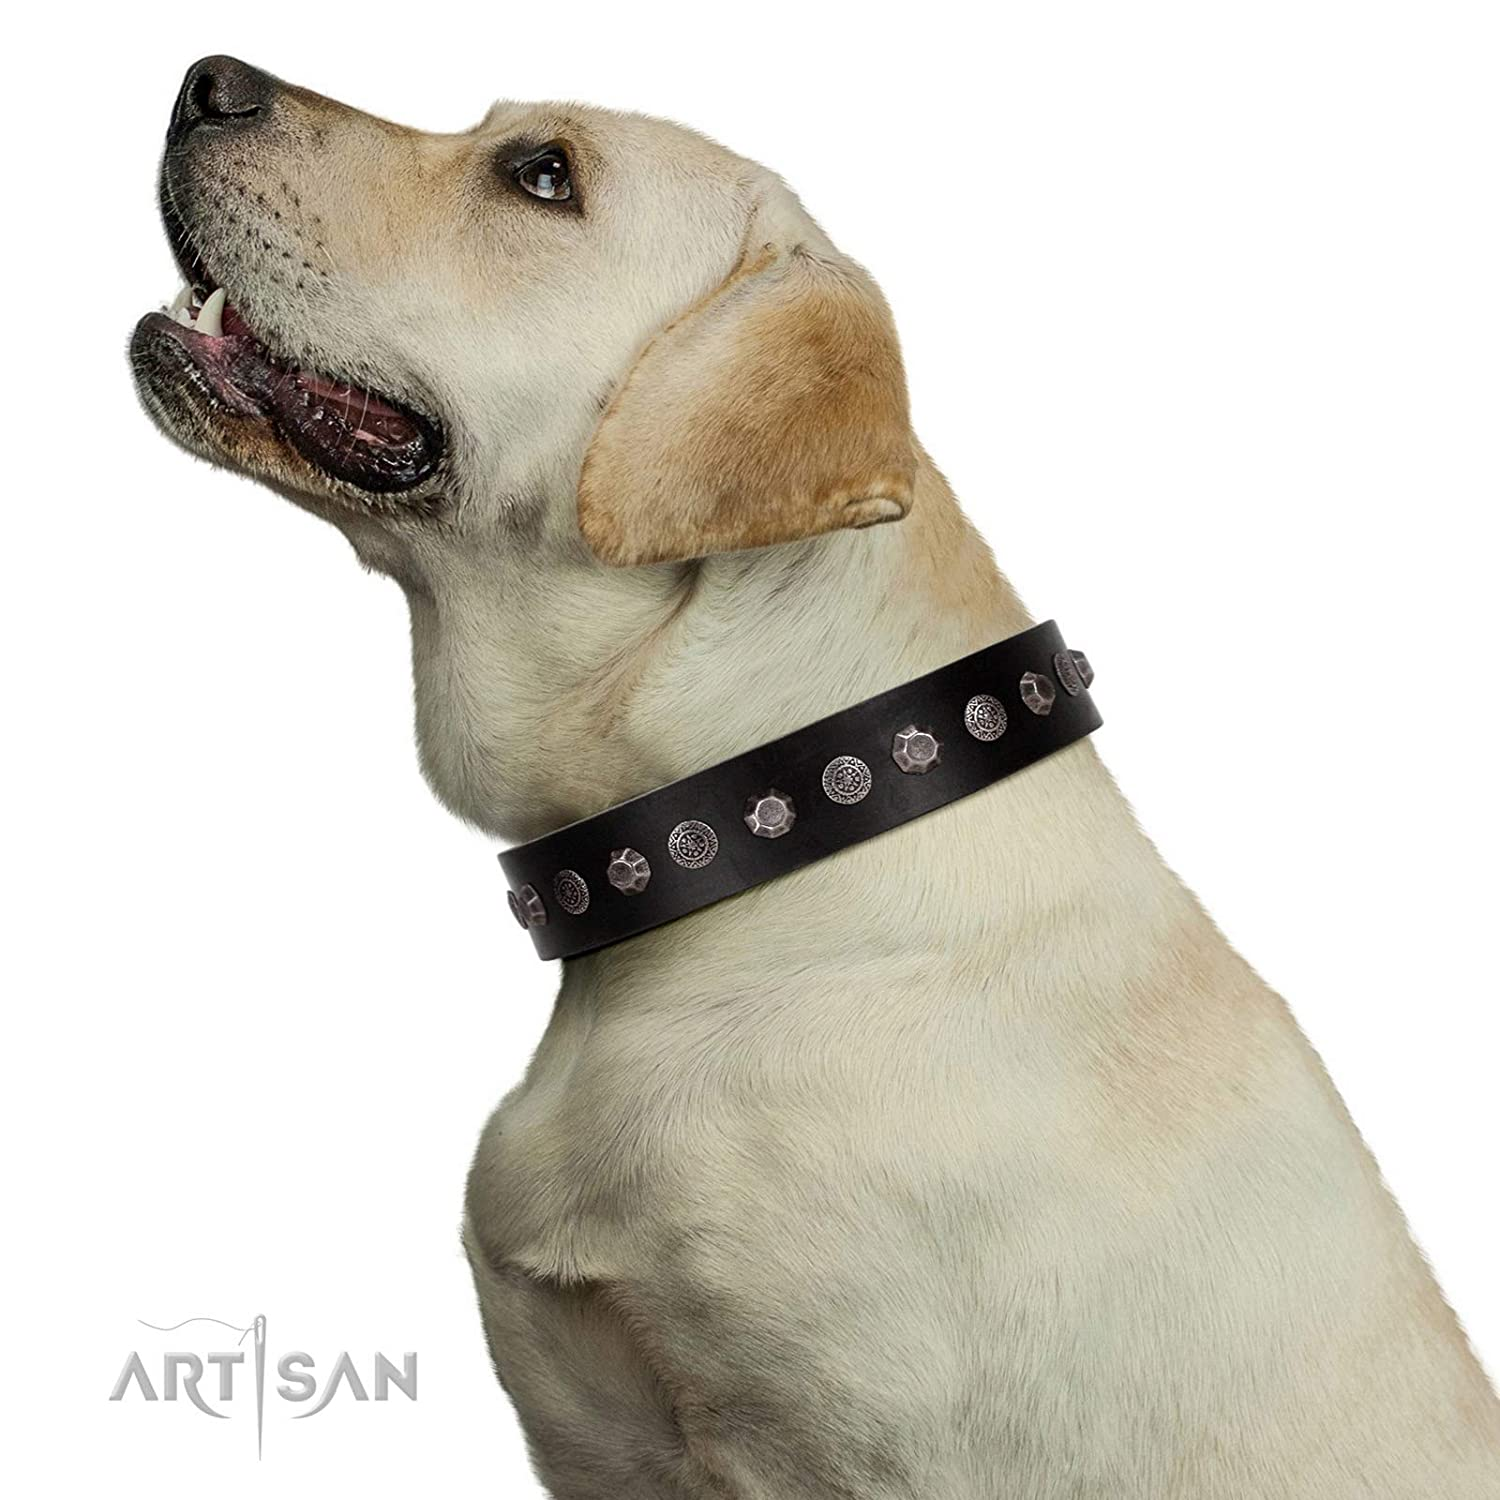 Fits for 22 inch (55cm) dog's neck size FDT Artisan 22 inch Handmade Black Leather Dog Collar with Silver-Like Studs Black Knight 1 1 2 inch (40 mm) Wide Gift Box Included